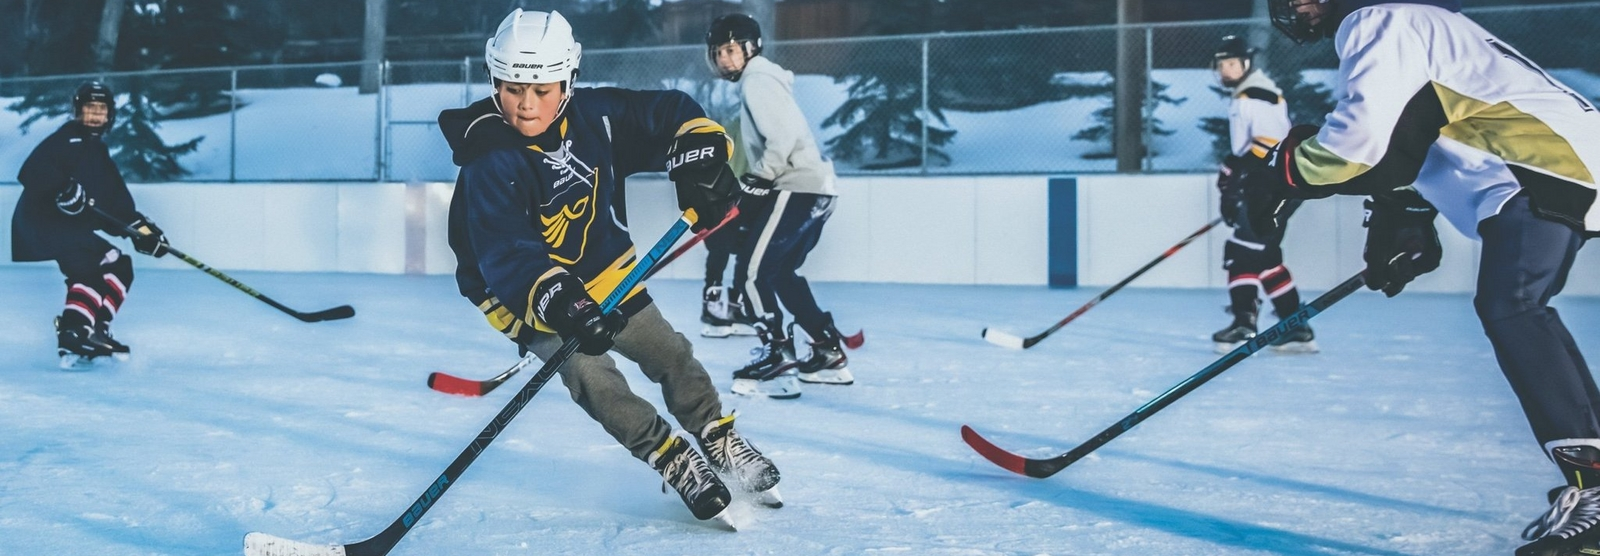 Kids playing hockey on ice.